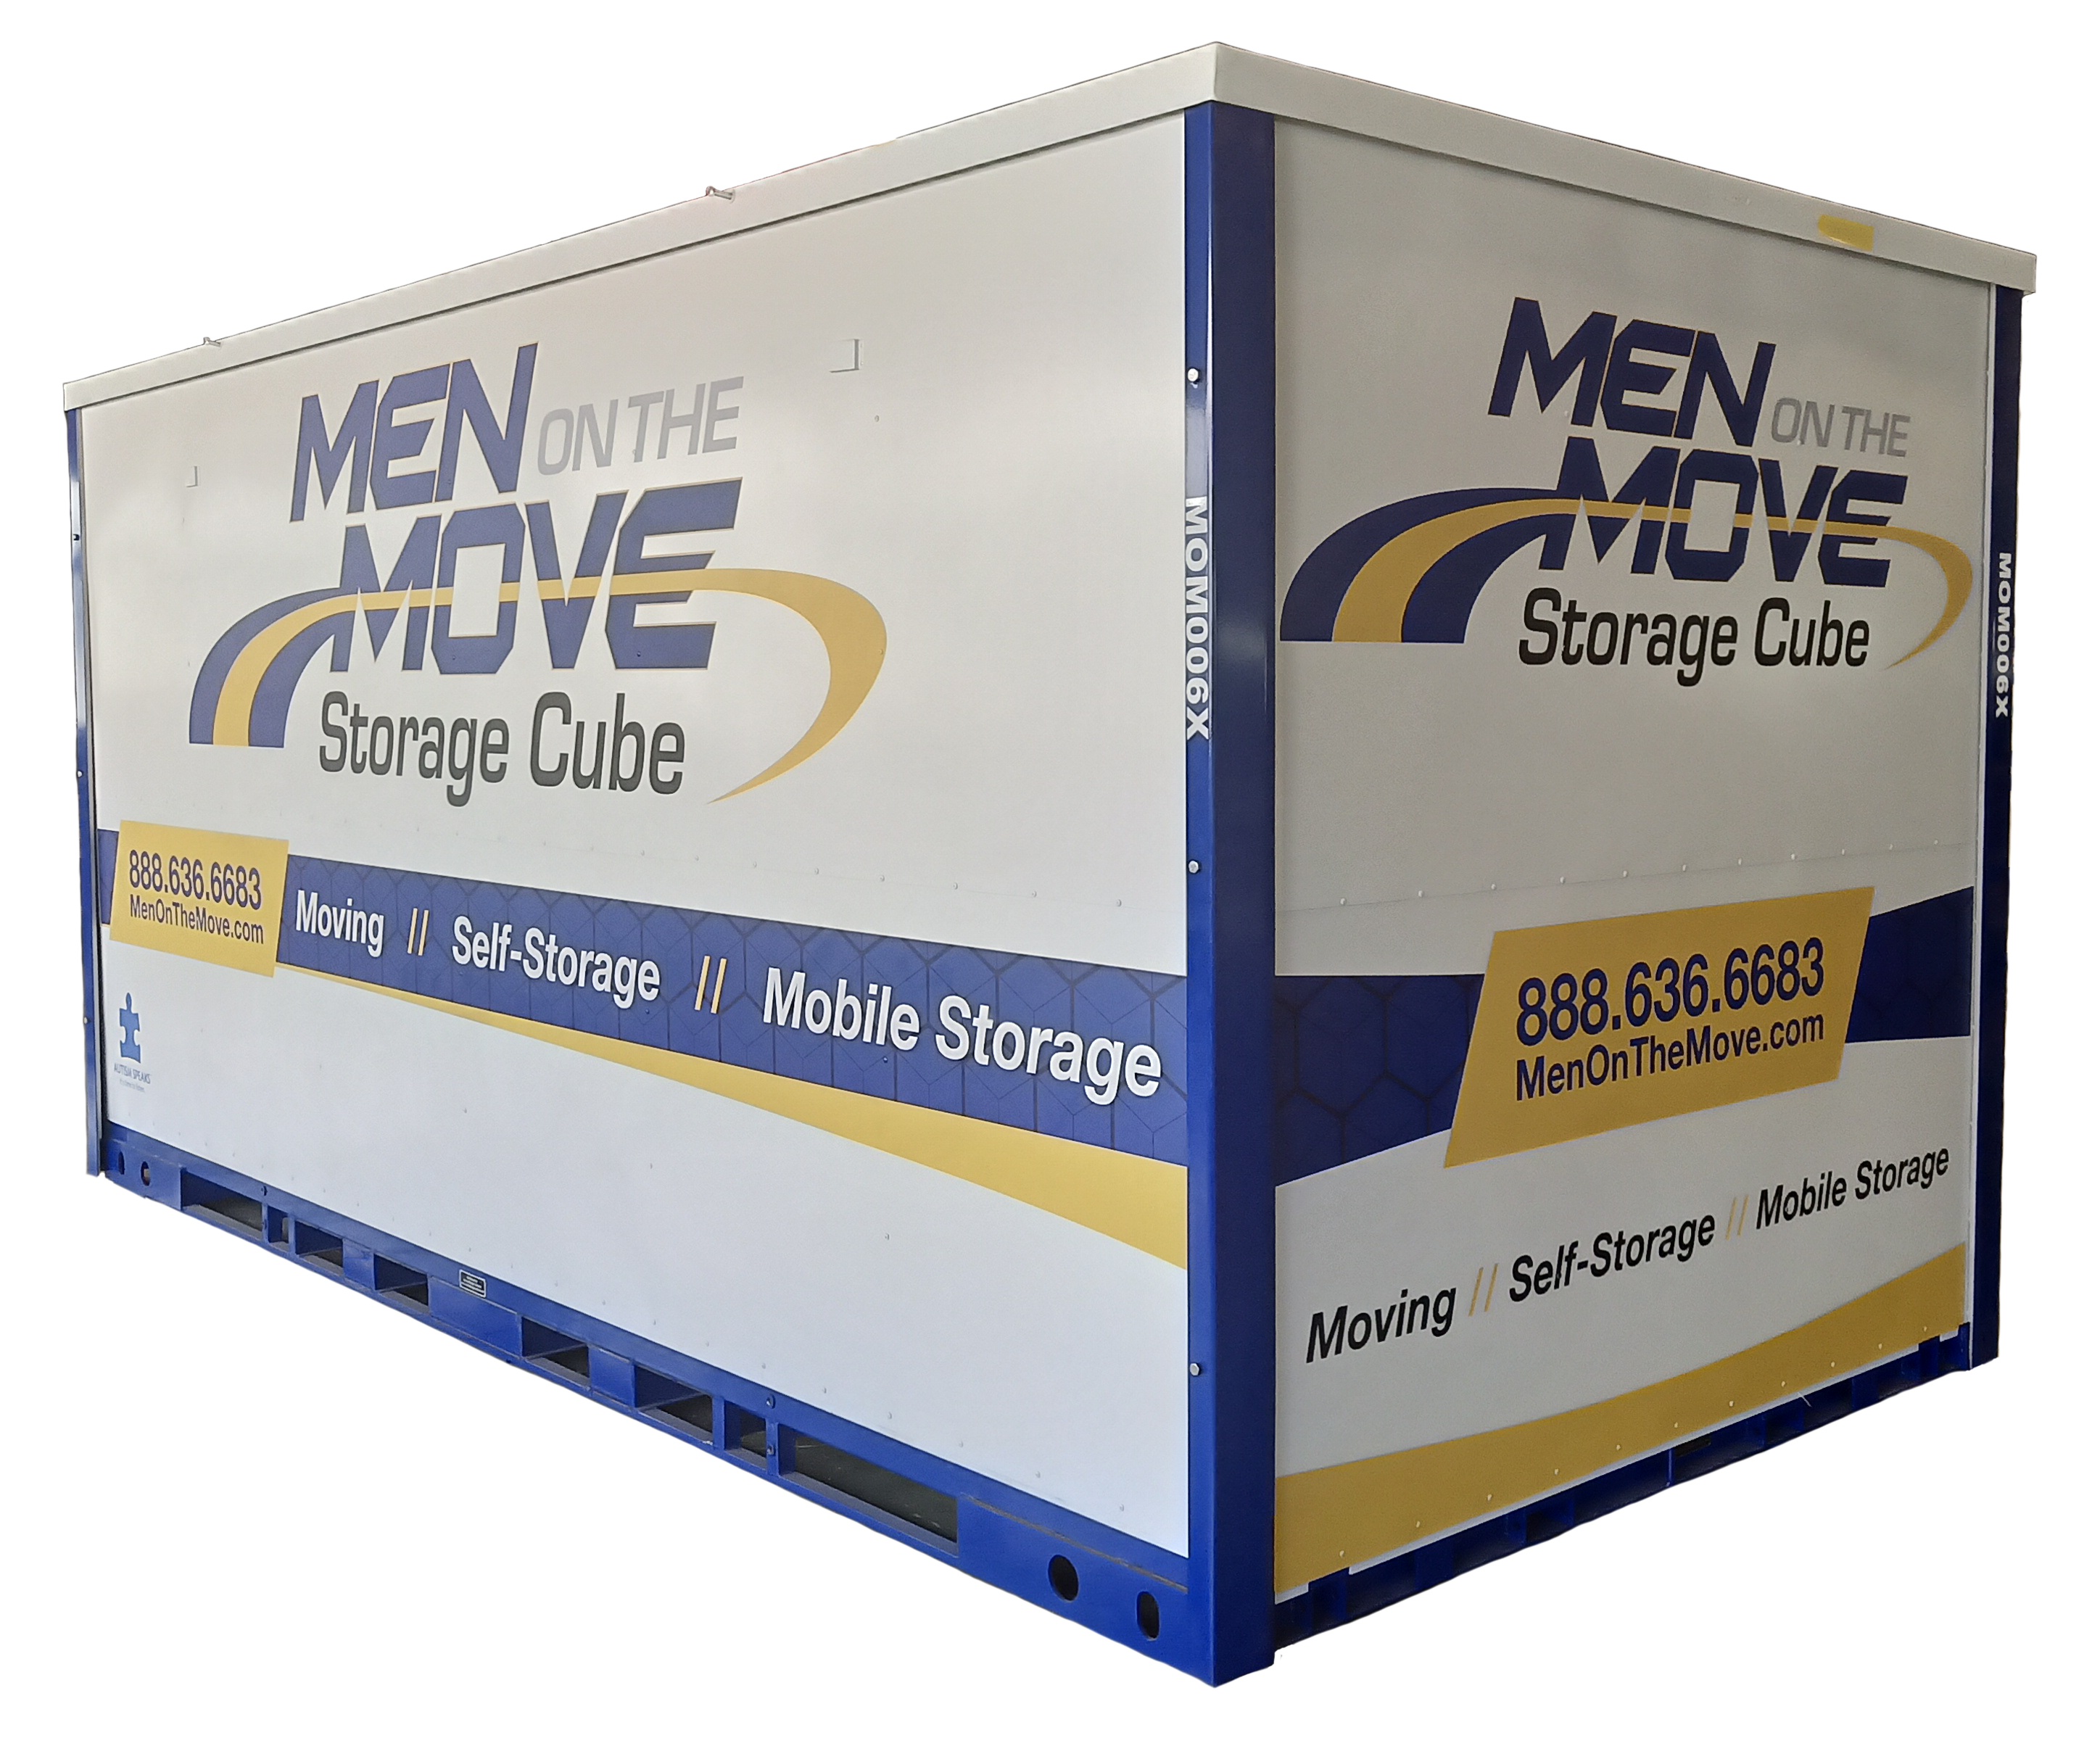 Men On The Move Storage Cube Image